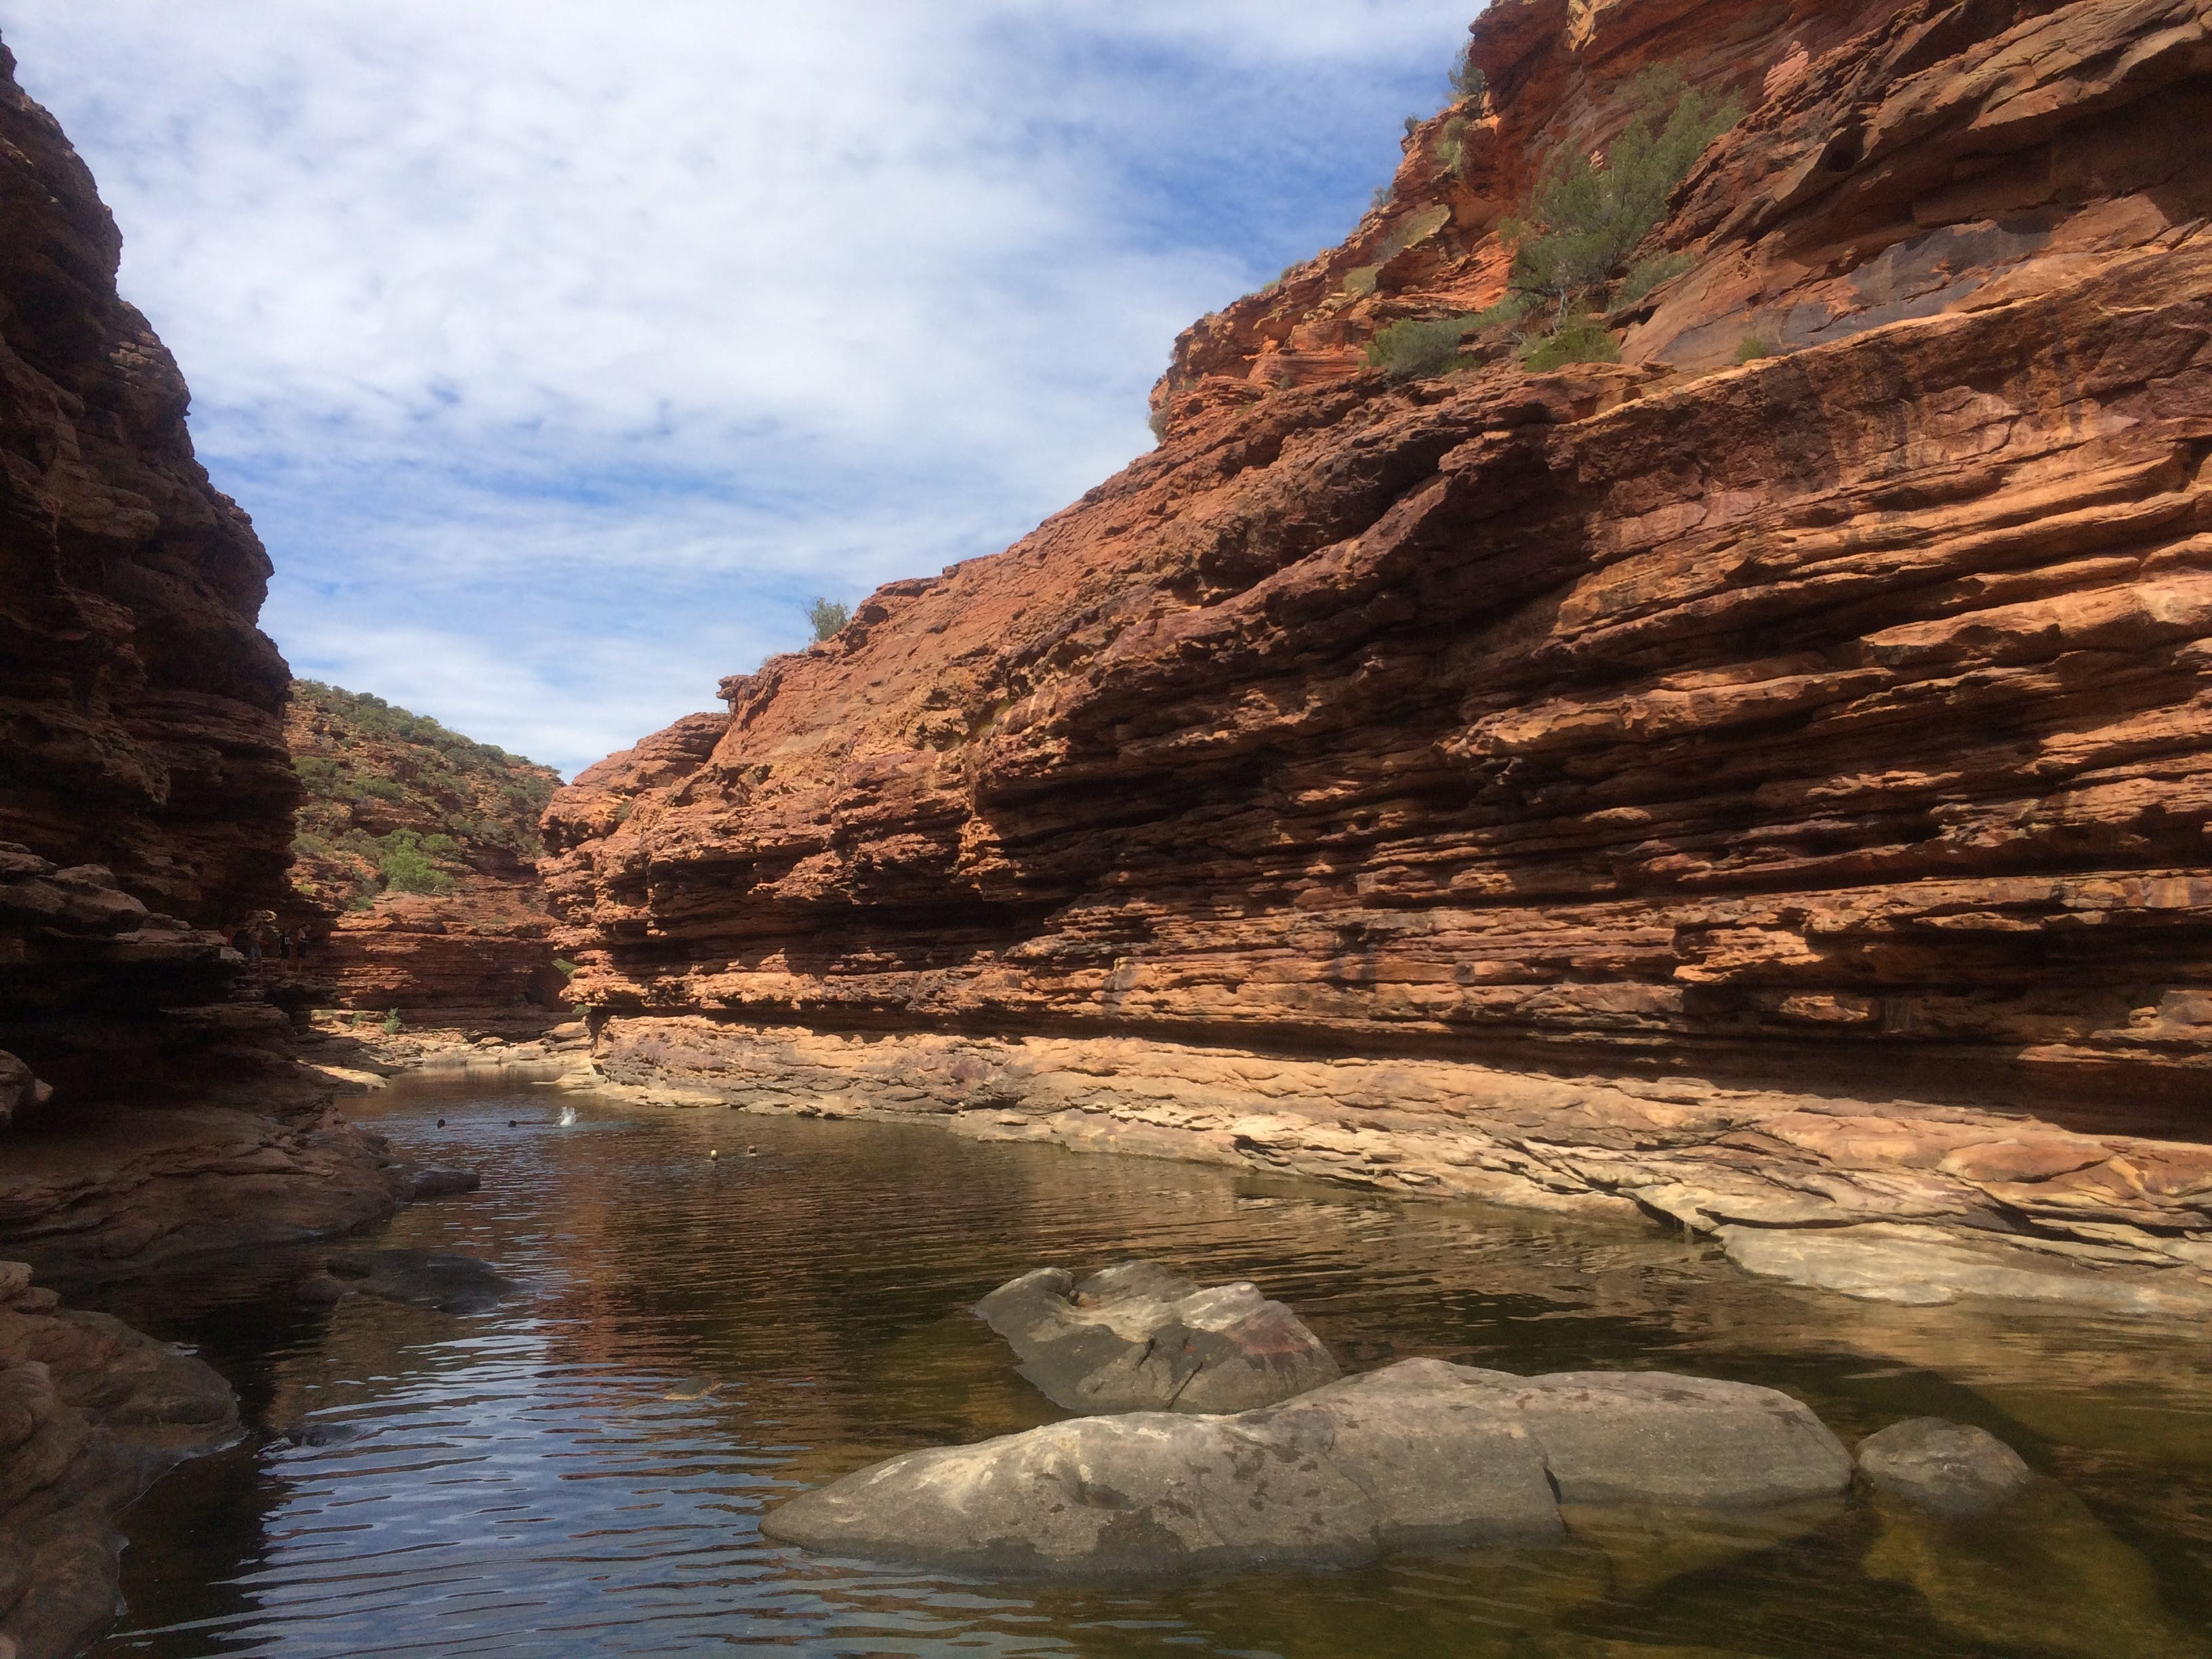 Things to do in kalbarri? Visit the Ross Graham lookout and the Hawks Head Lookout and book accommodation Kalbarri, WA.